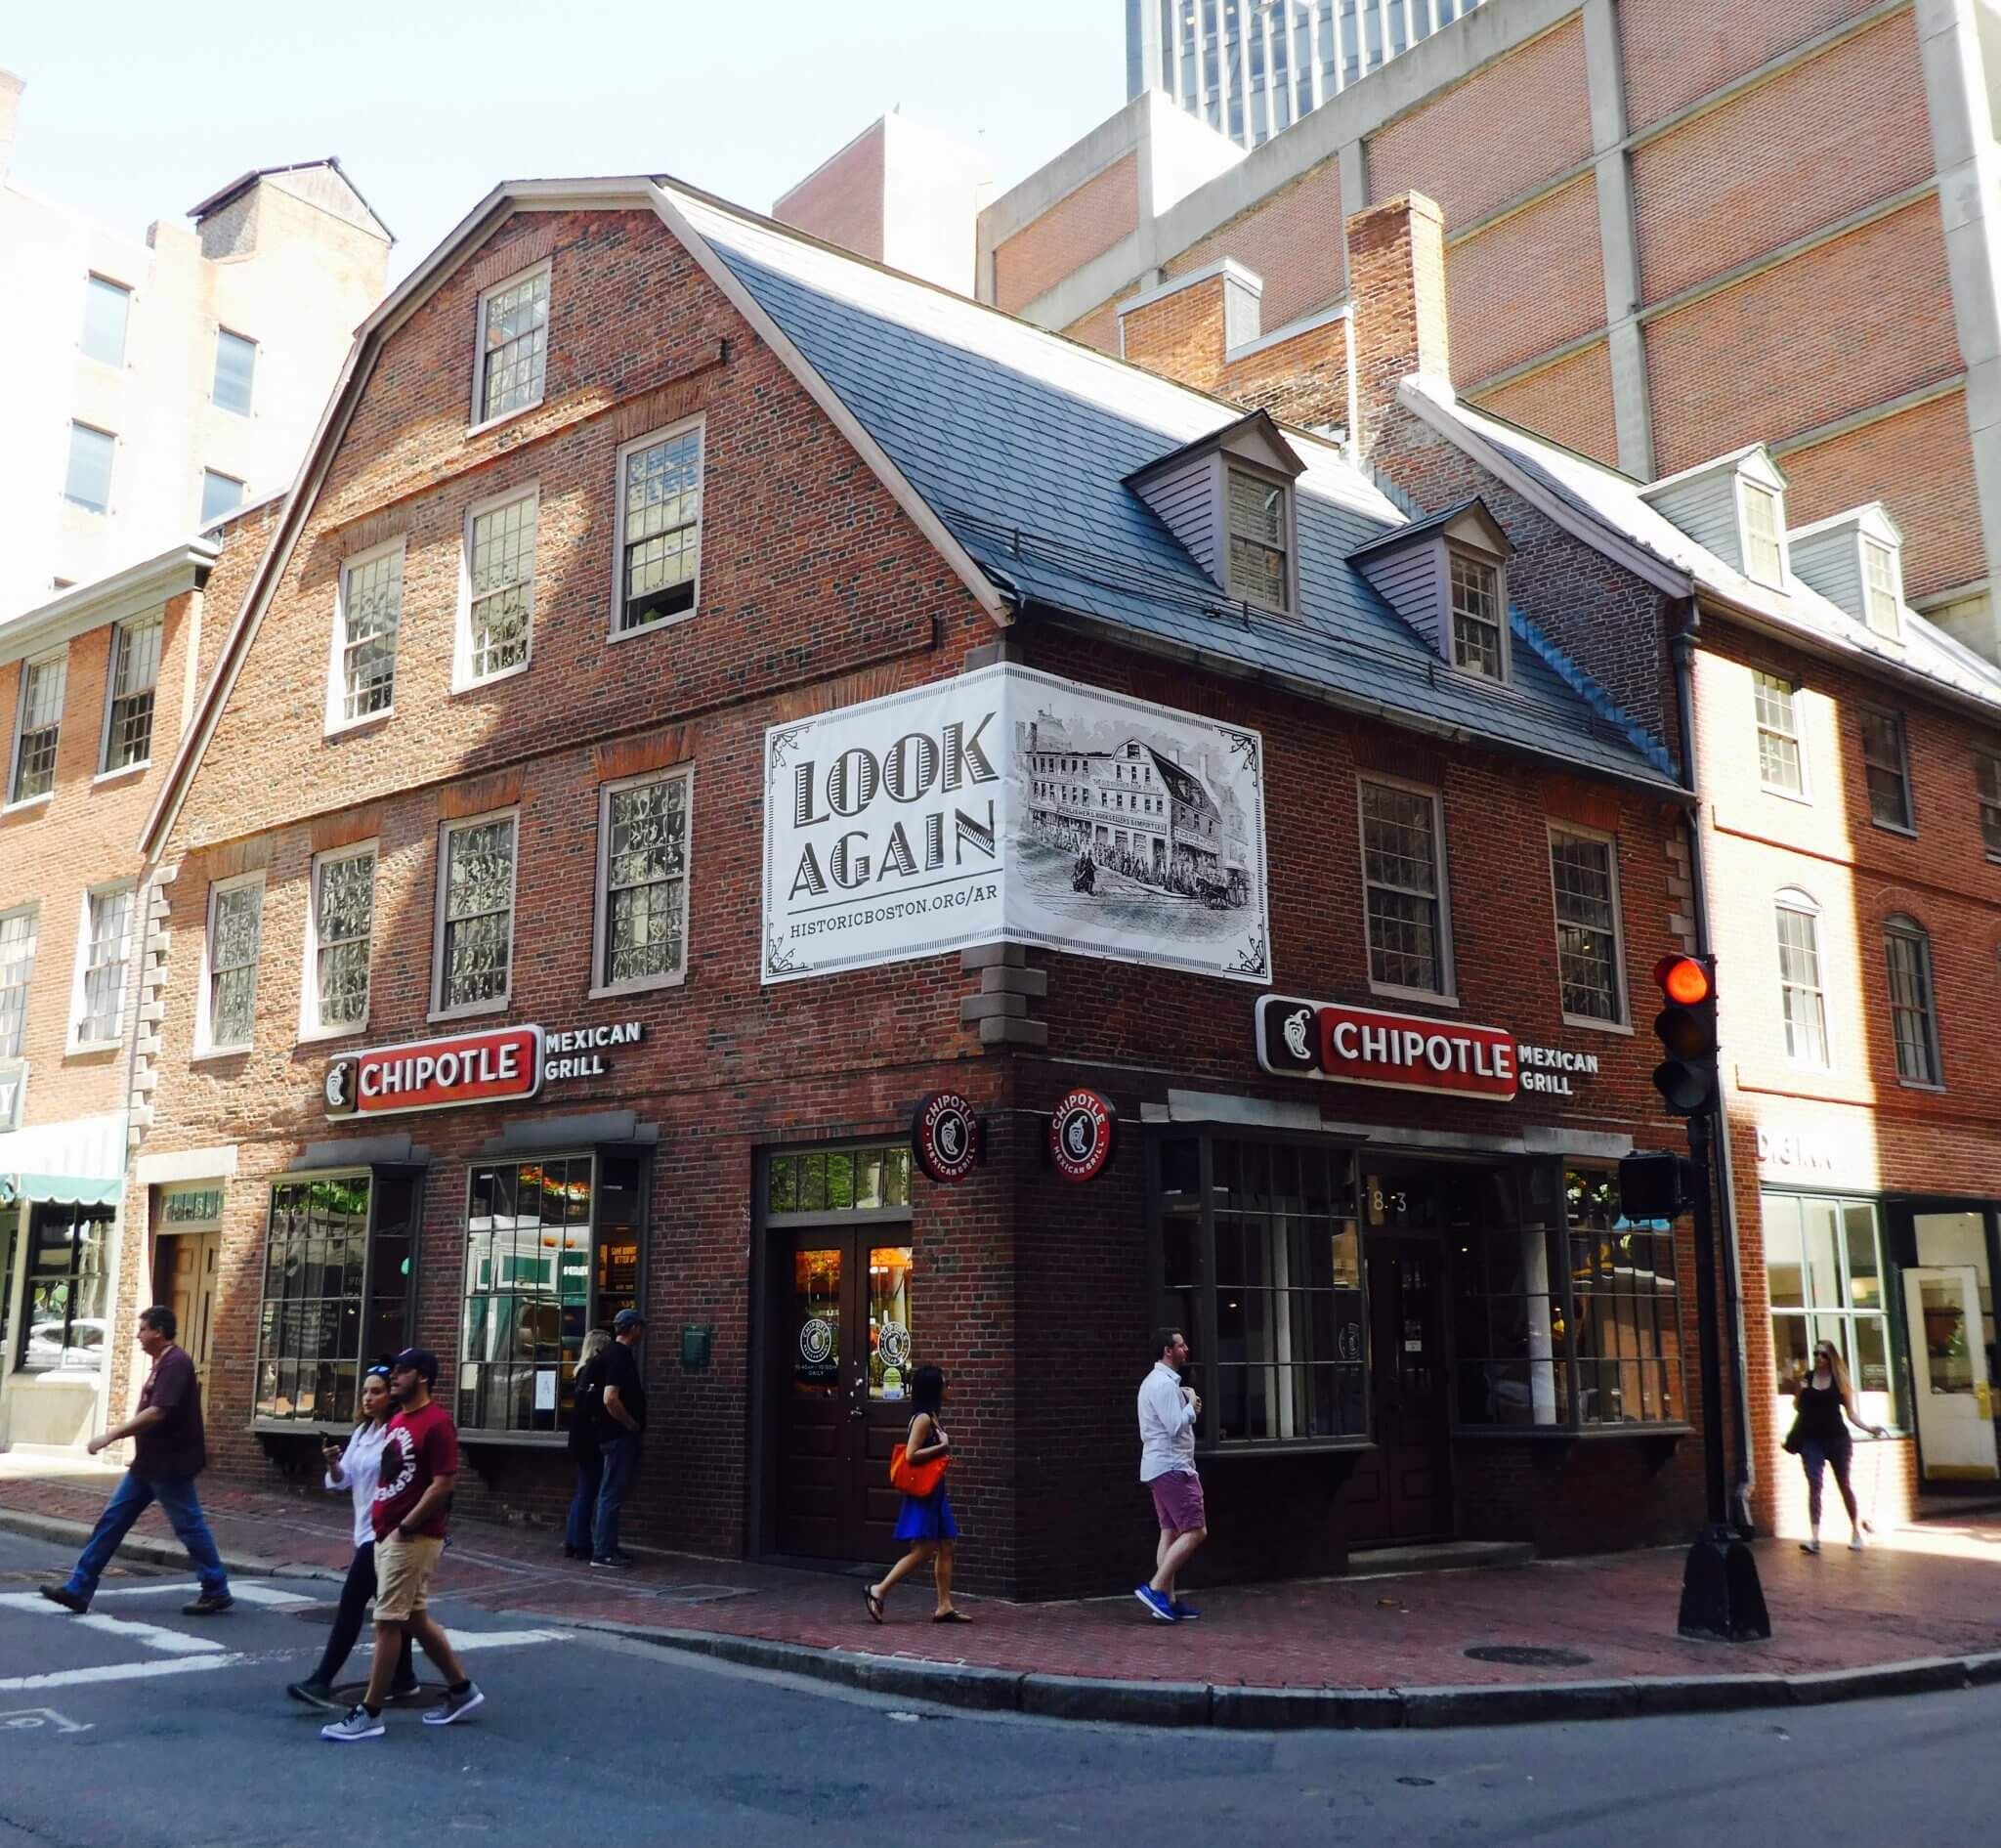 freedom trail Old Corner Bookstore